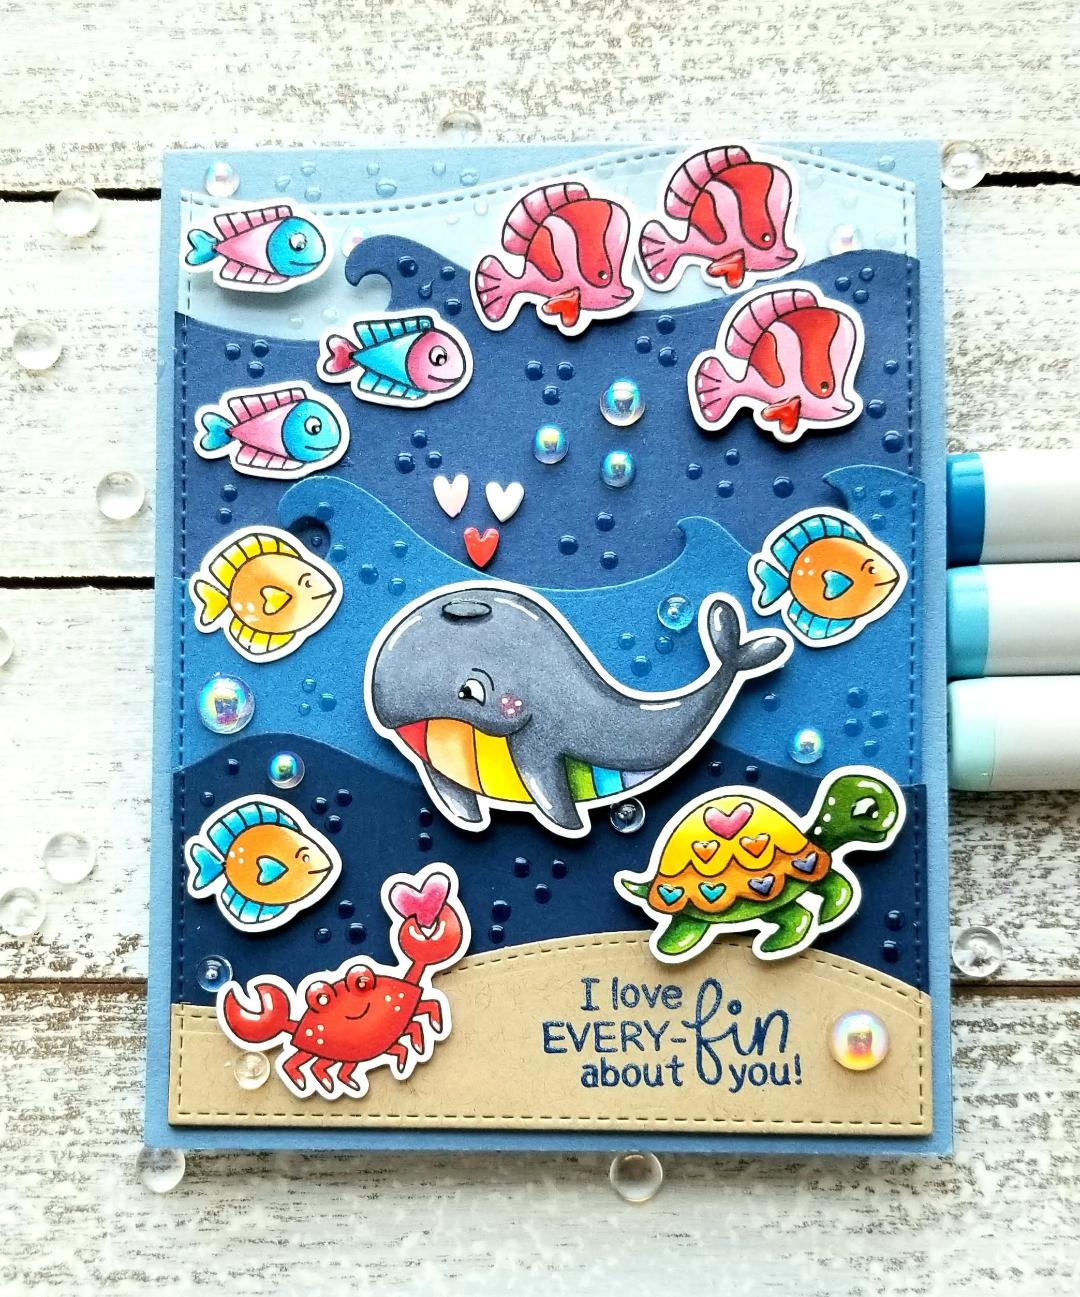 I Love Every-fin About You Card by February Guest Designer Lori U'ren | Tides of Love Stamp Set, Land Borders Die Set and Sea Borders Die Set by Newton's Nook Designs #newtonsnook #handmade